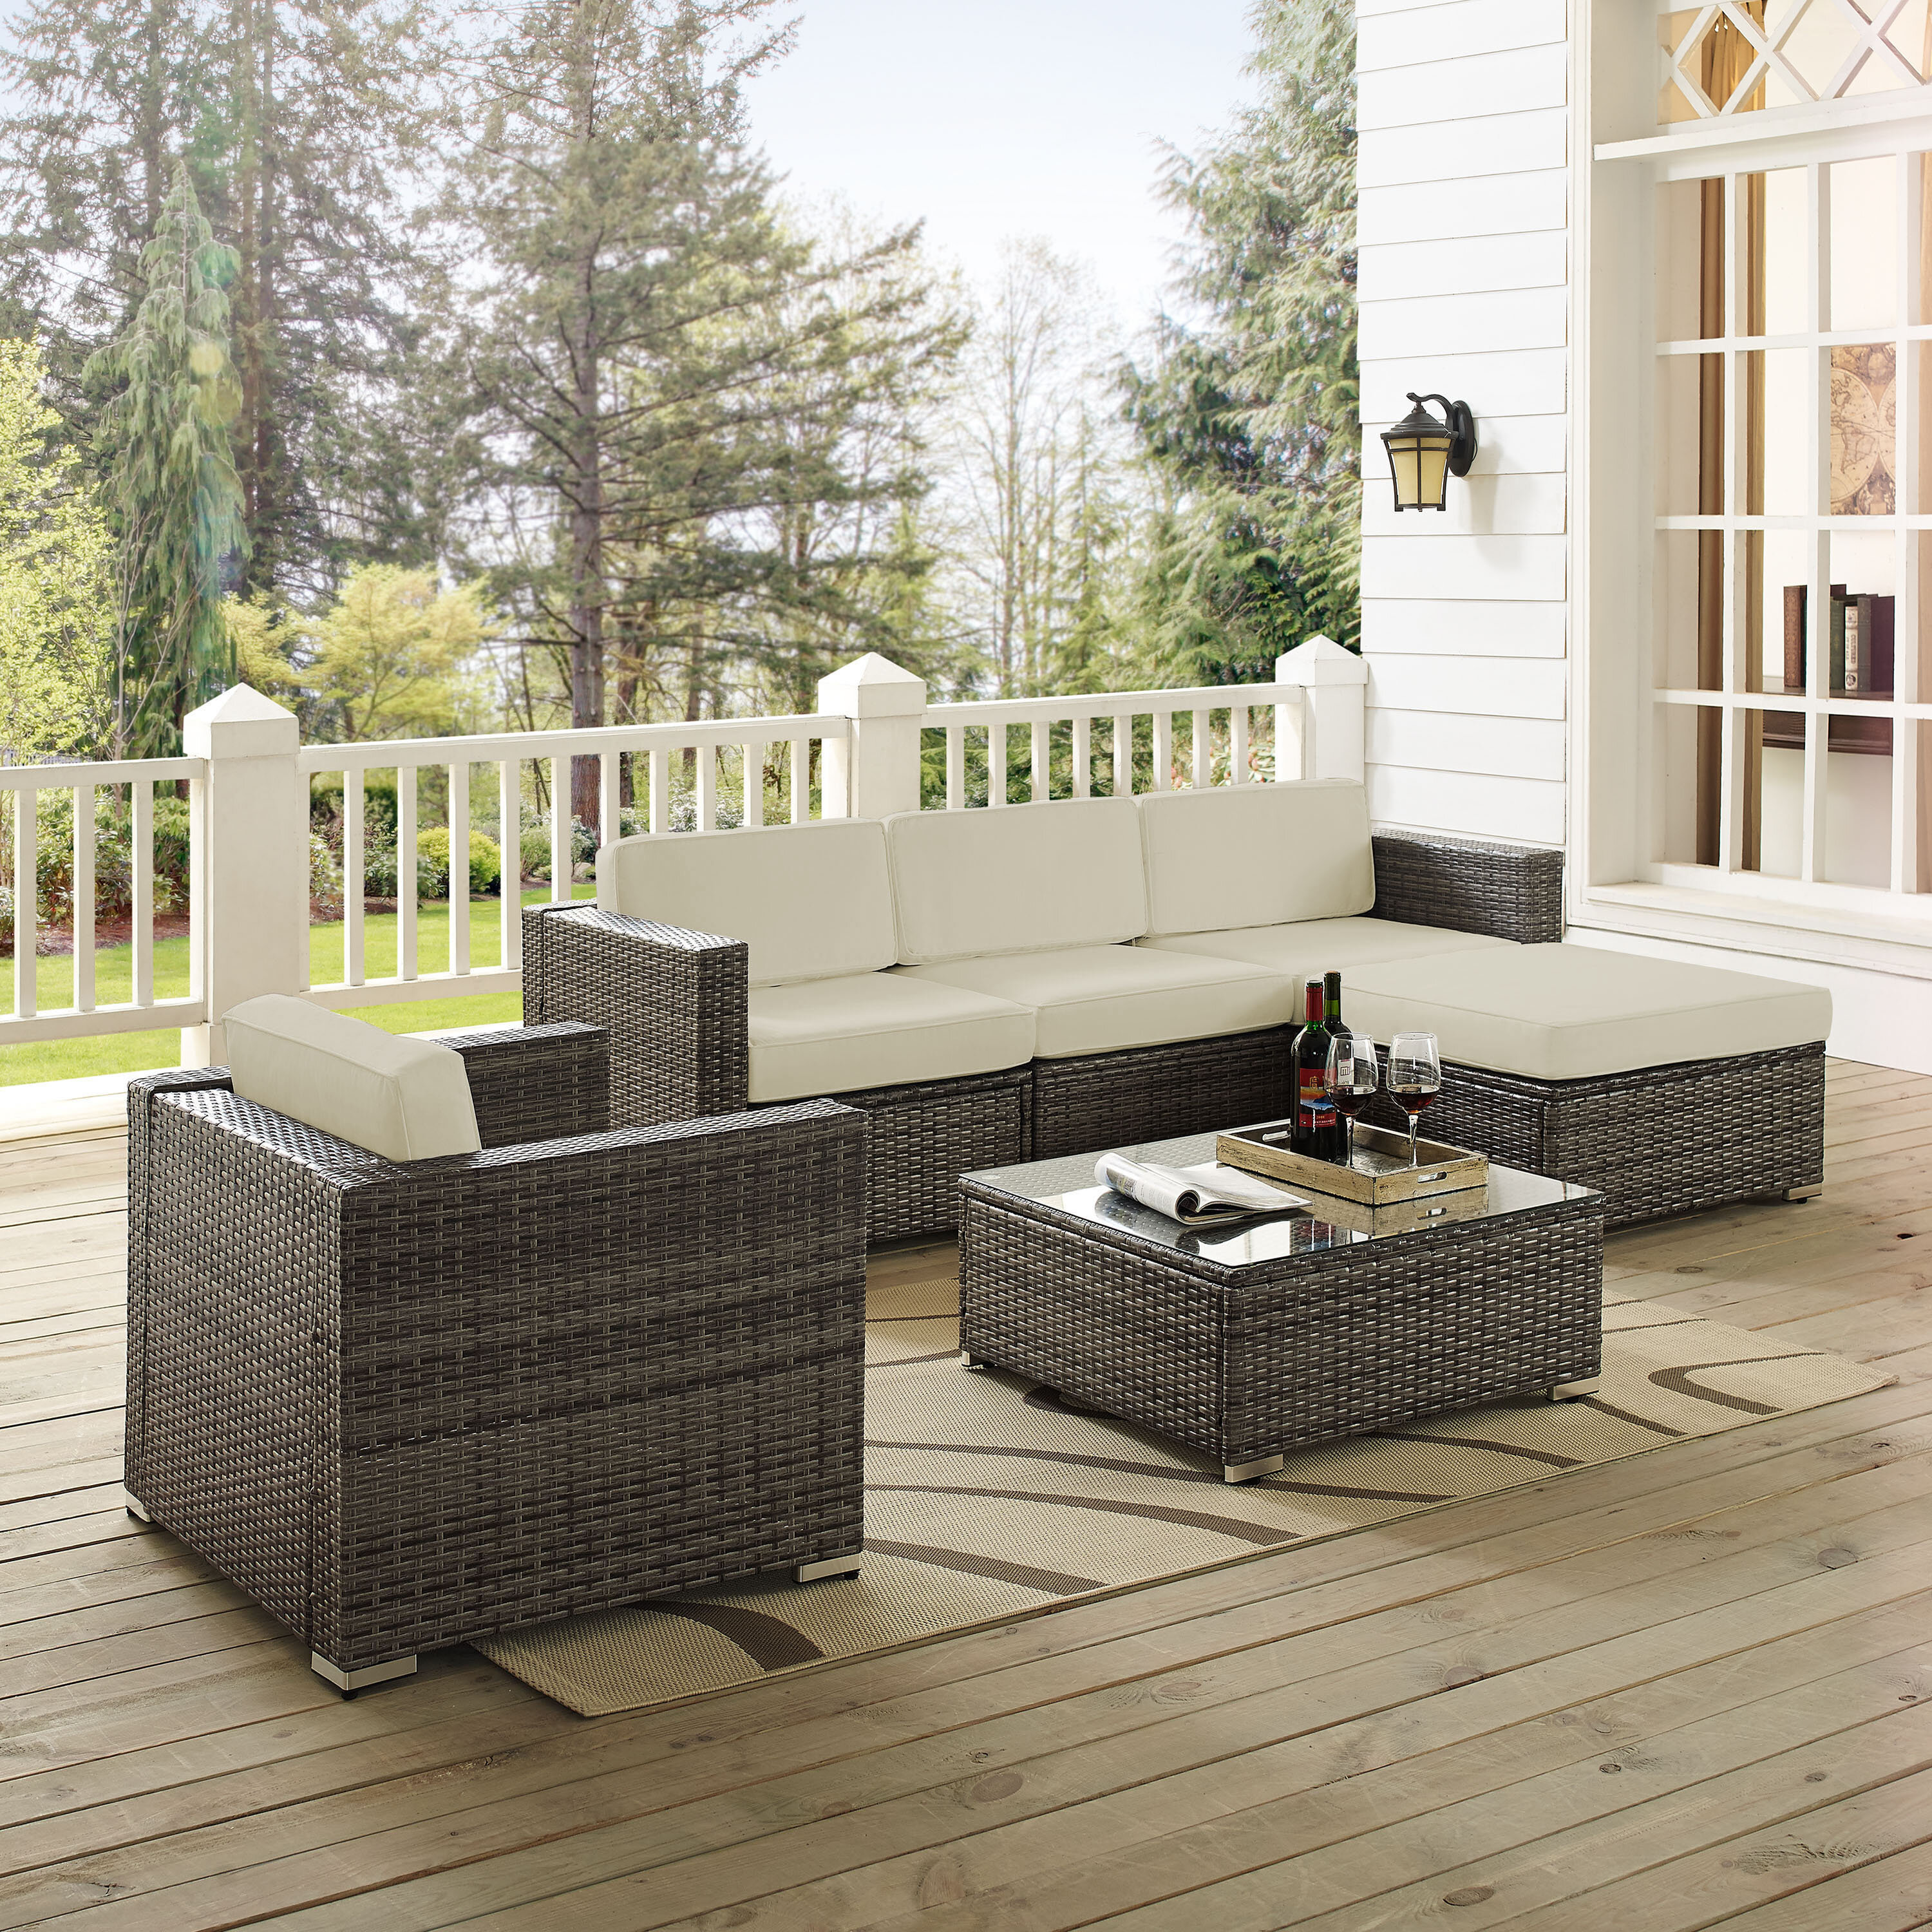 6 Piece Rattan Sectional Seating Group